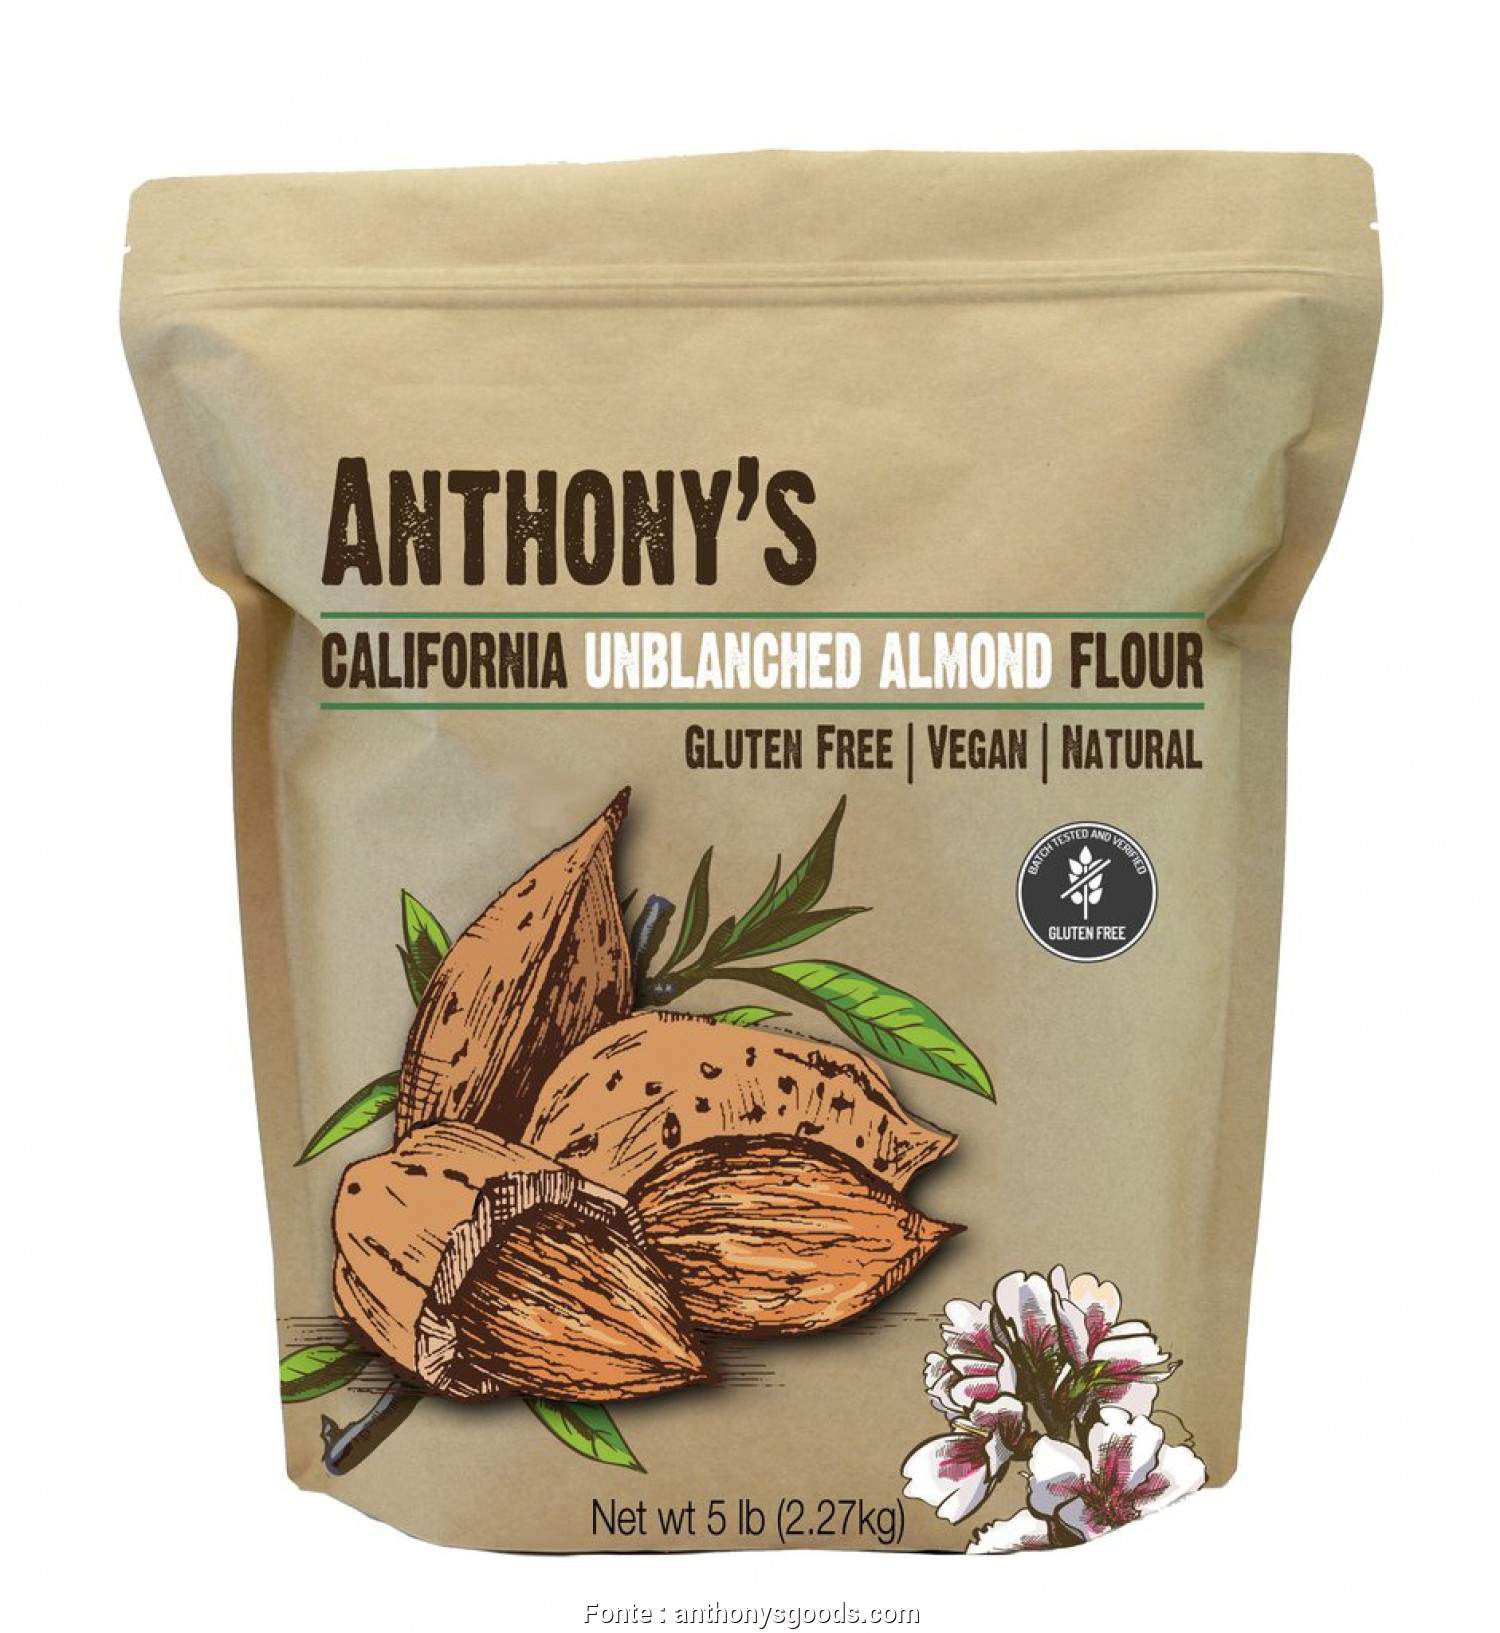 S Divani Flour, Migliore Natural Unblanched Almond Meal/Flour: Batch Tested & Verified Gluten-F, Anthony